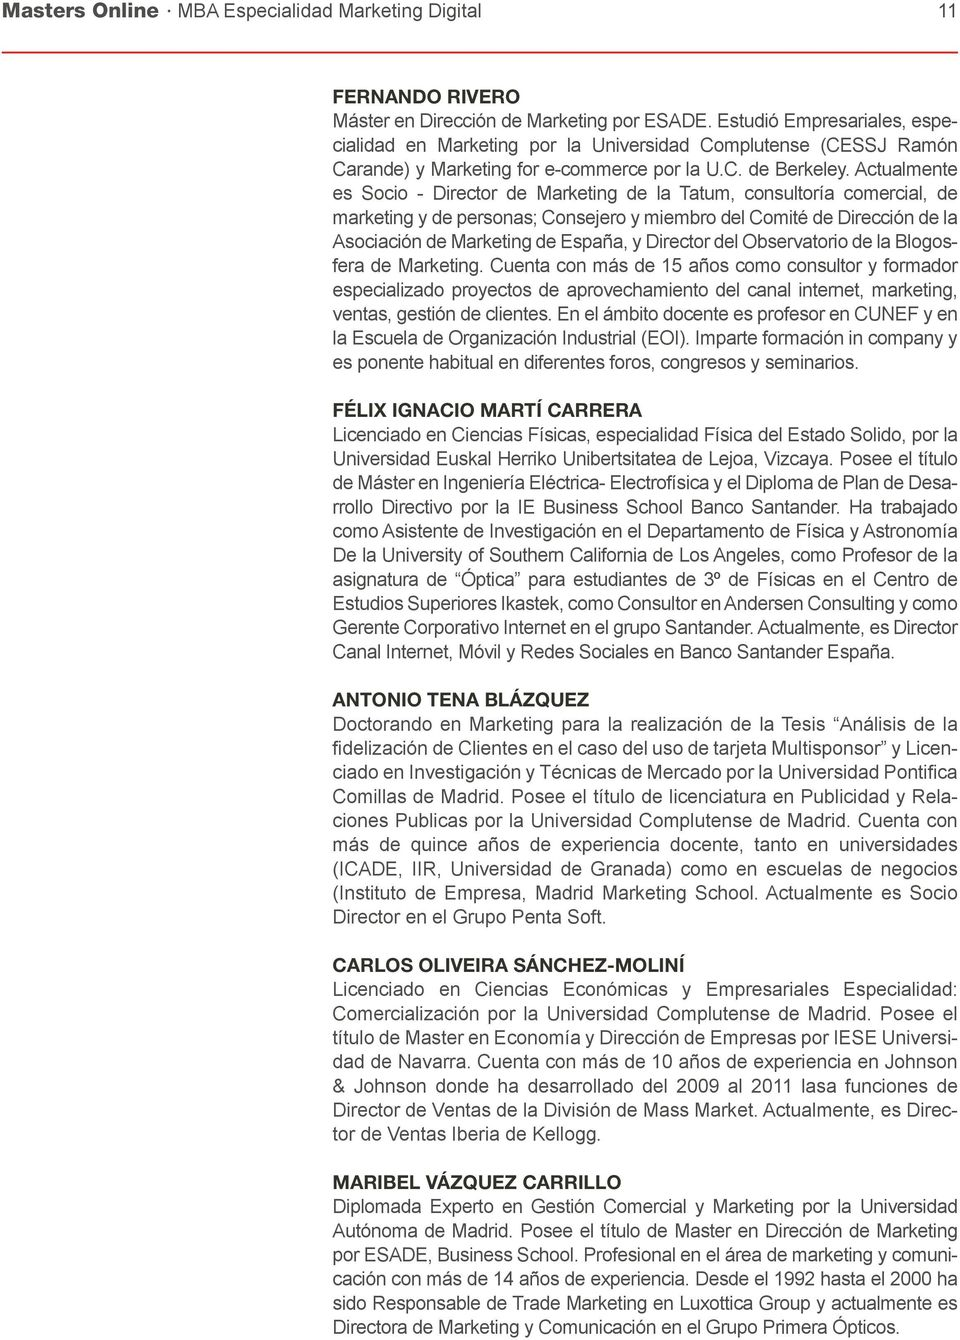 Actualmente es Socio - Director de Marketing de la Tatum, consultoría comercial, de marketing y de personas; Consejero y miembro del Comité de Dirección de la Asociación de Marketing de España, y